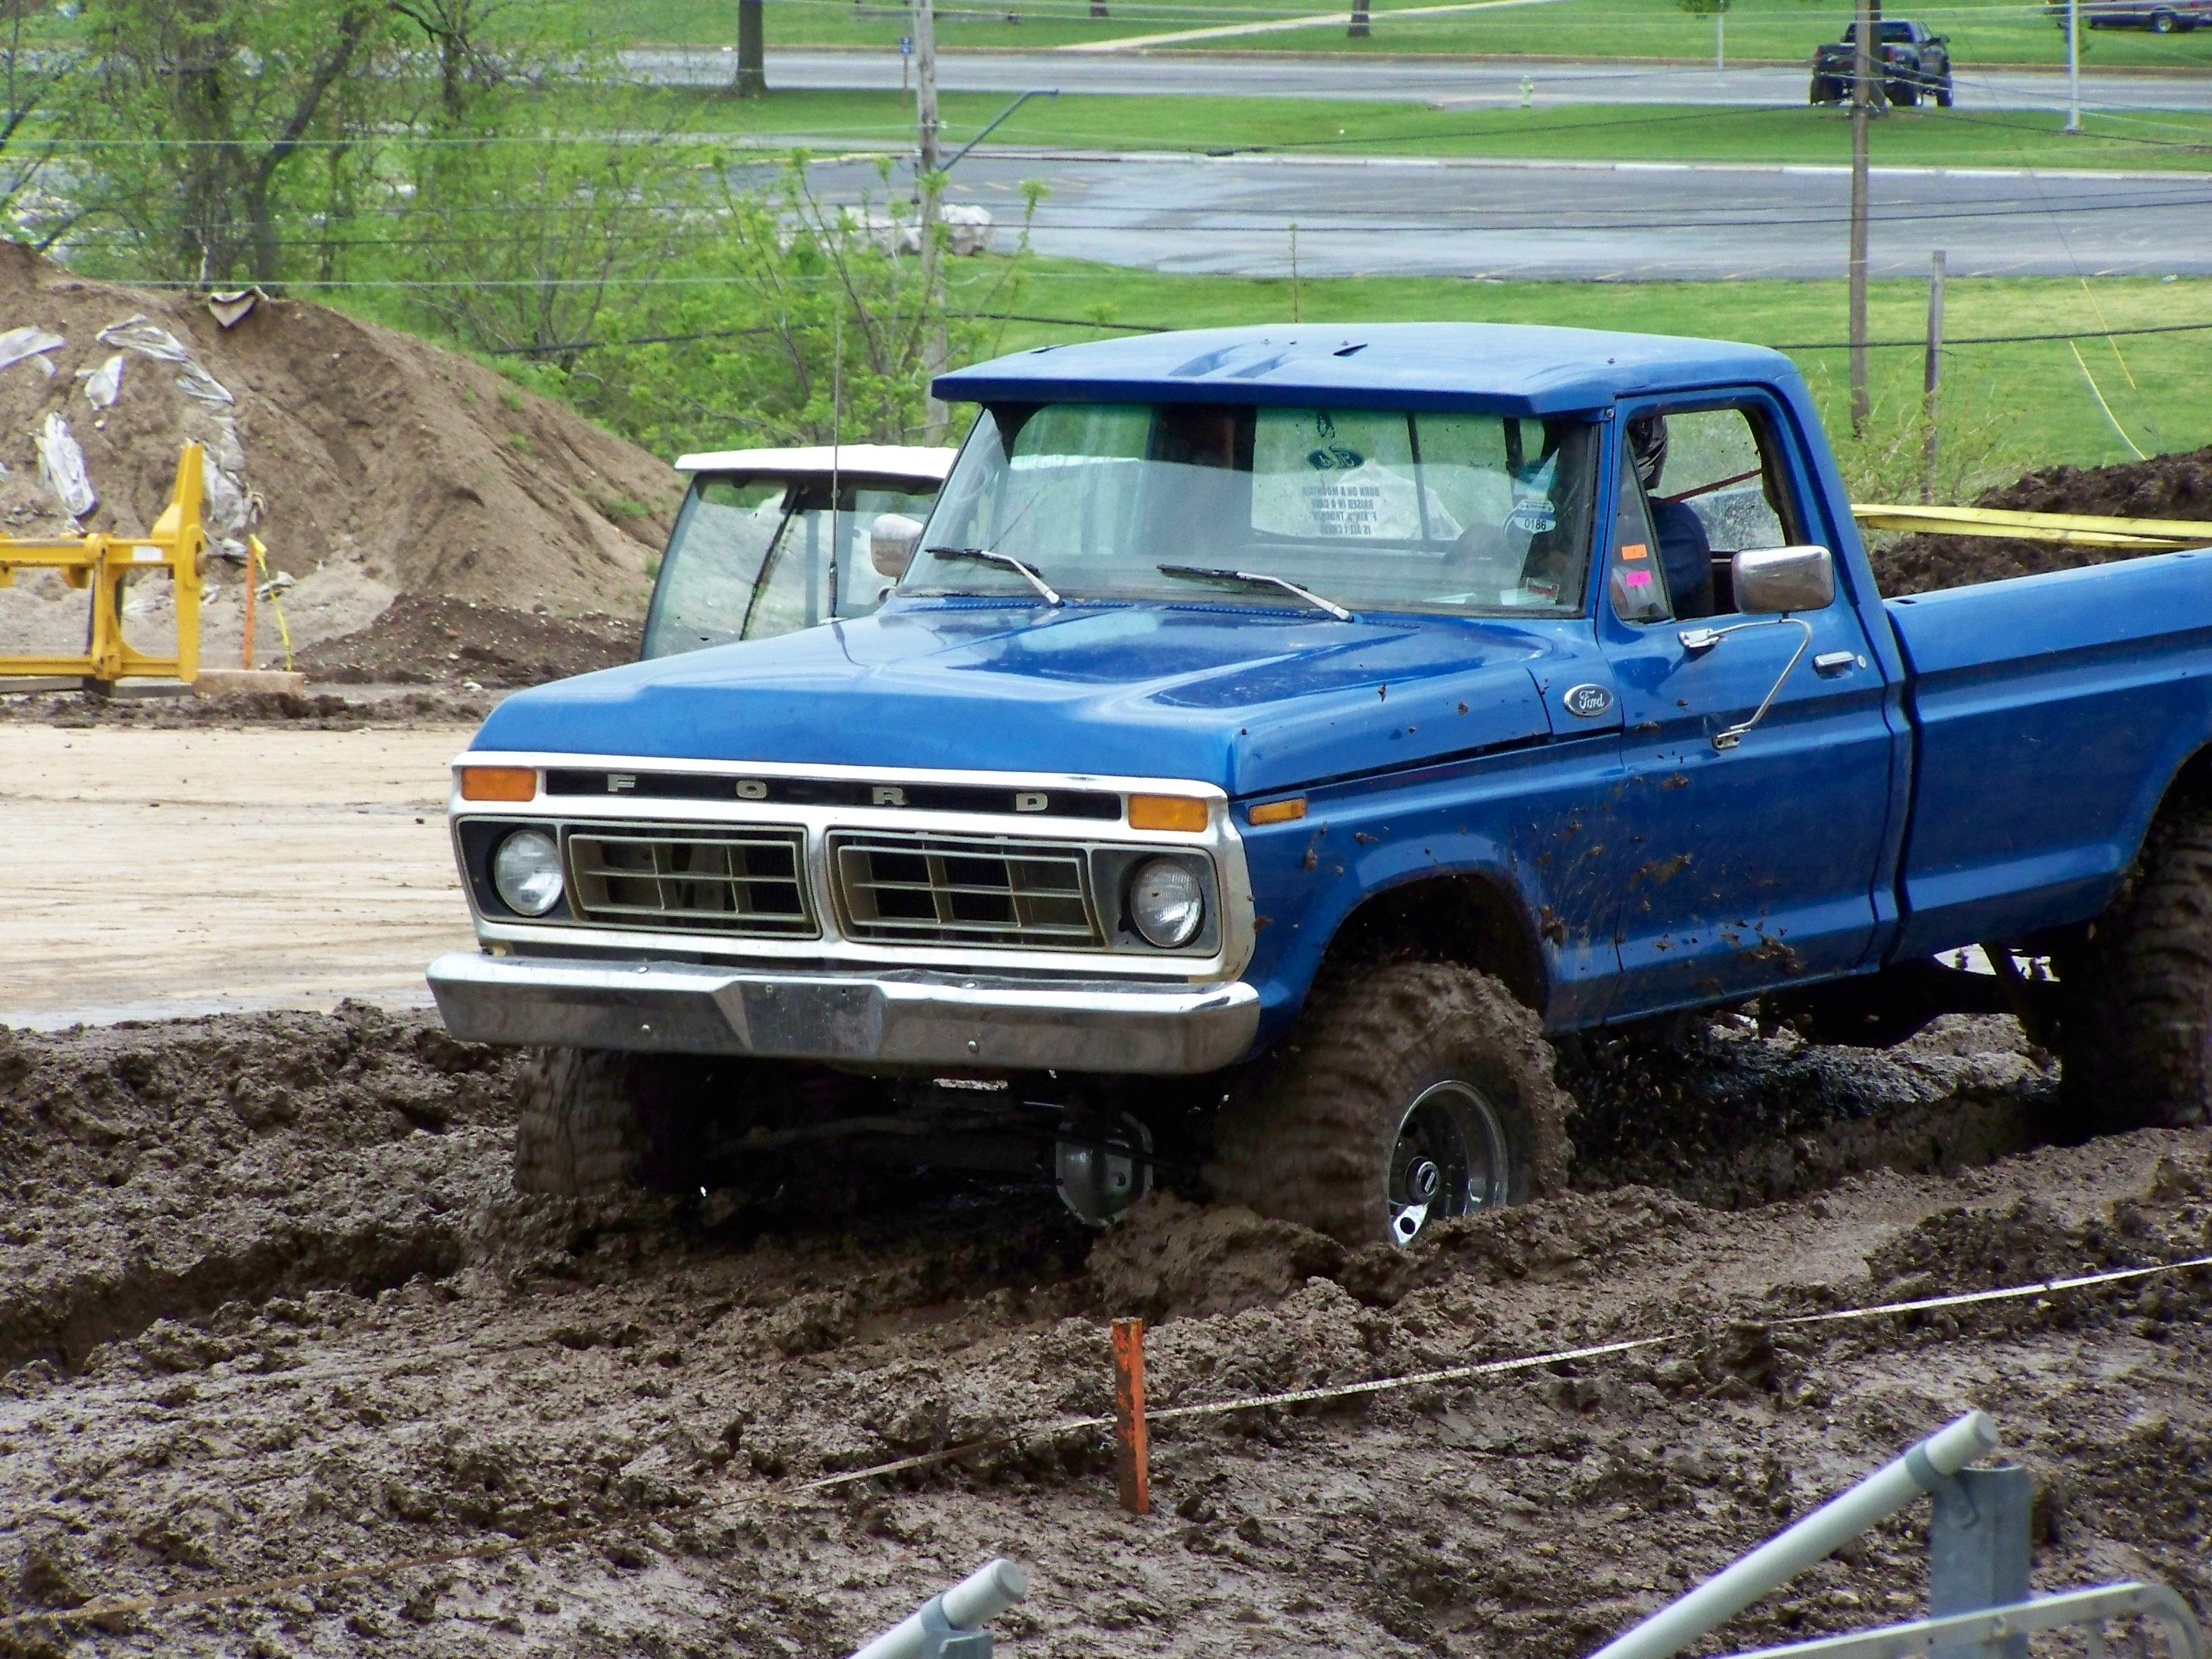 Ford Vintage Mud Truck Ford Truck Models Ford Pickup Trucks Ford Pickup